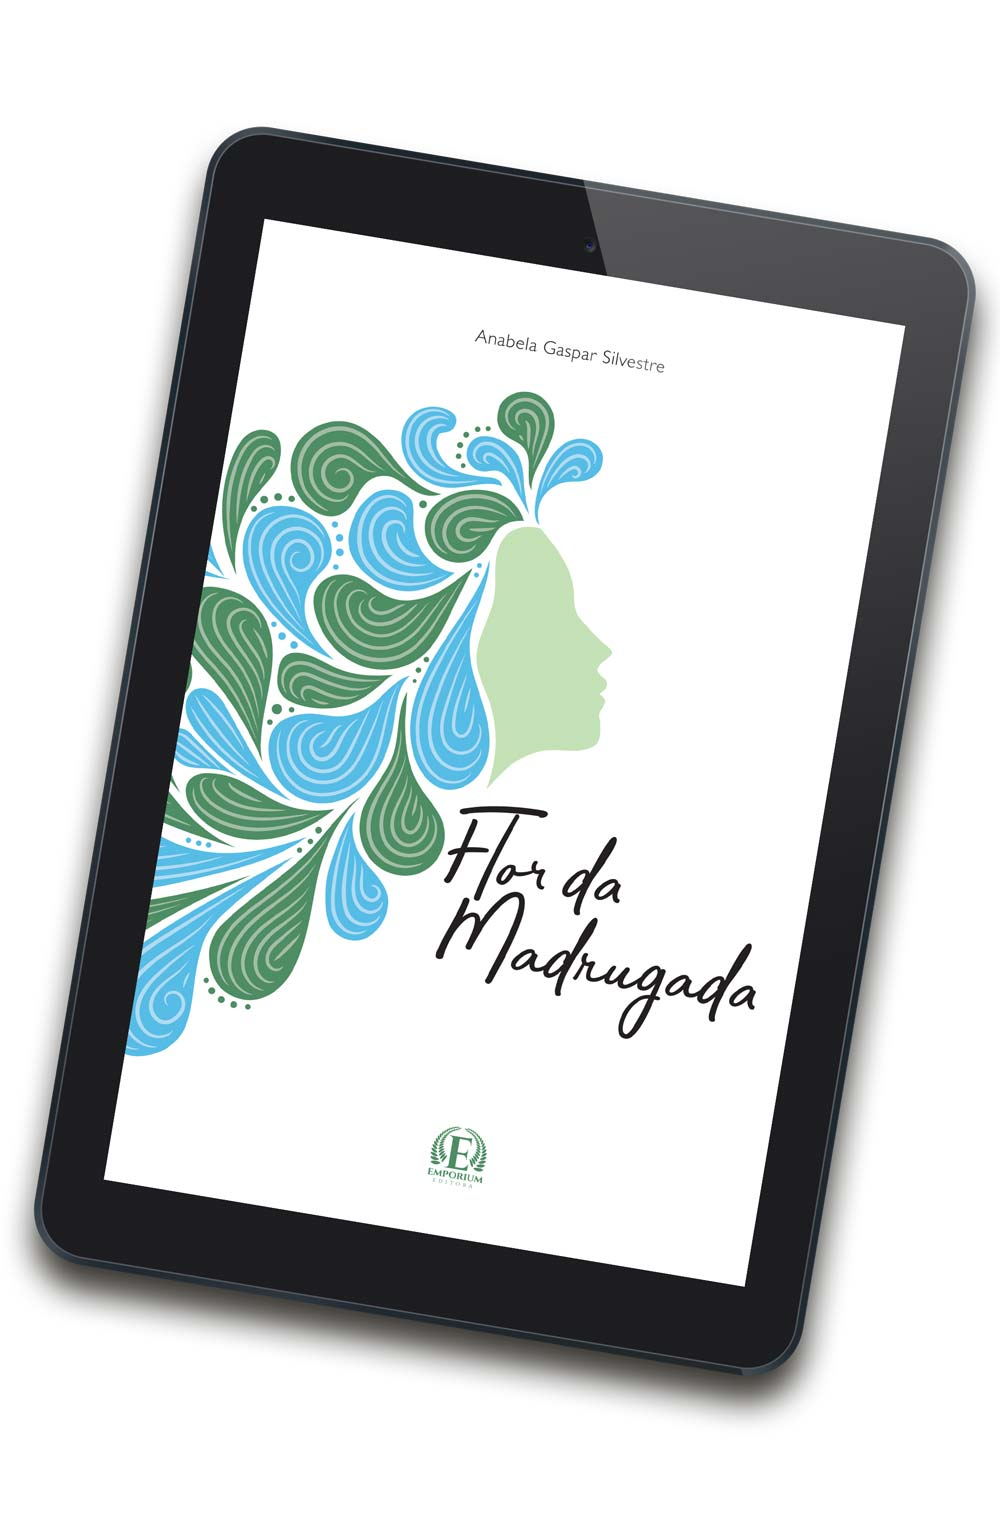 Ebook - Flor da Madrugada